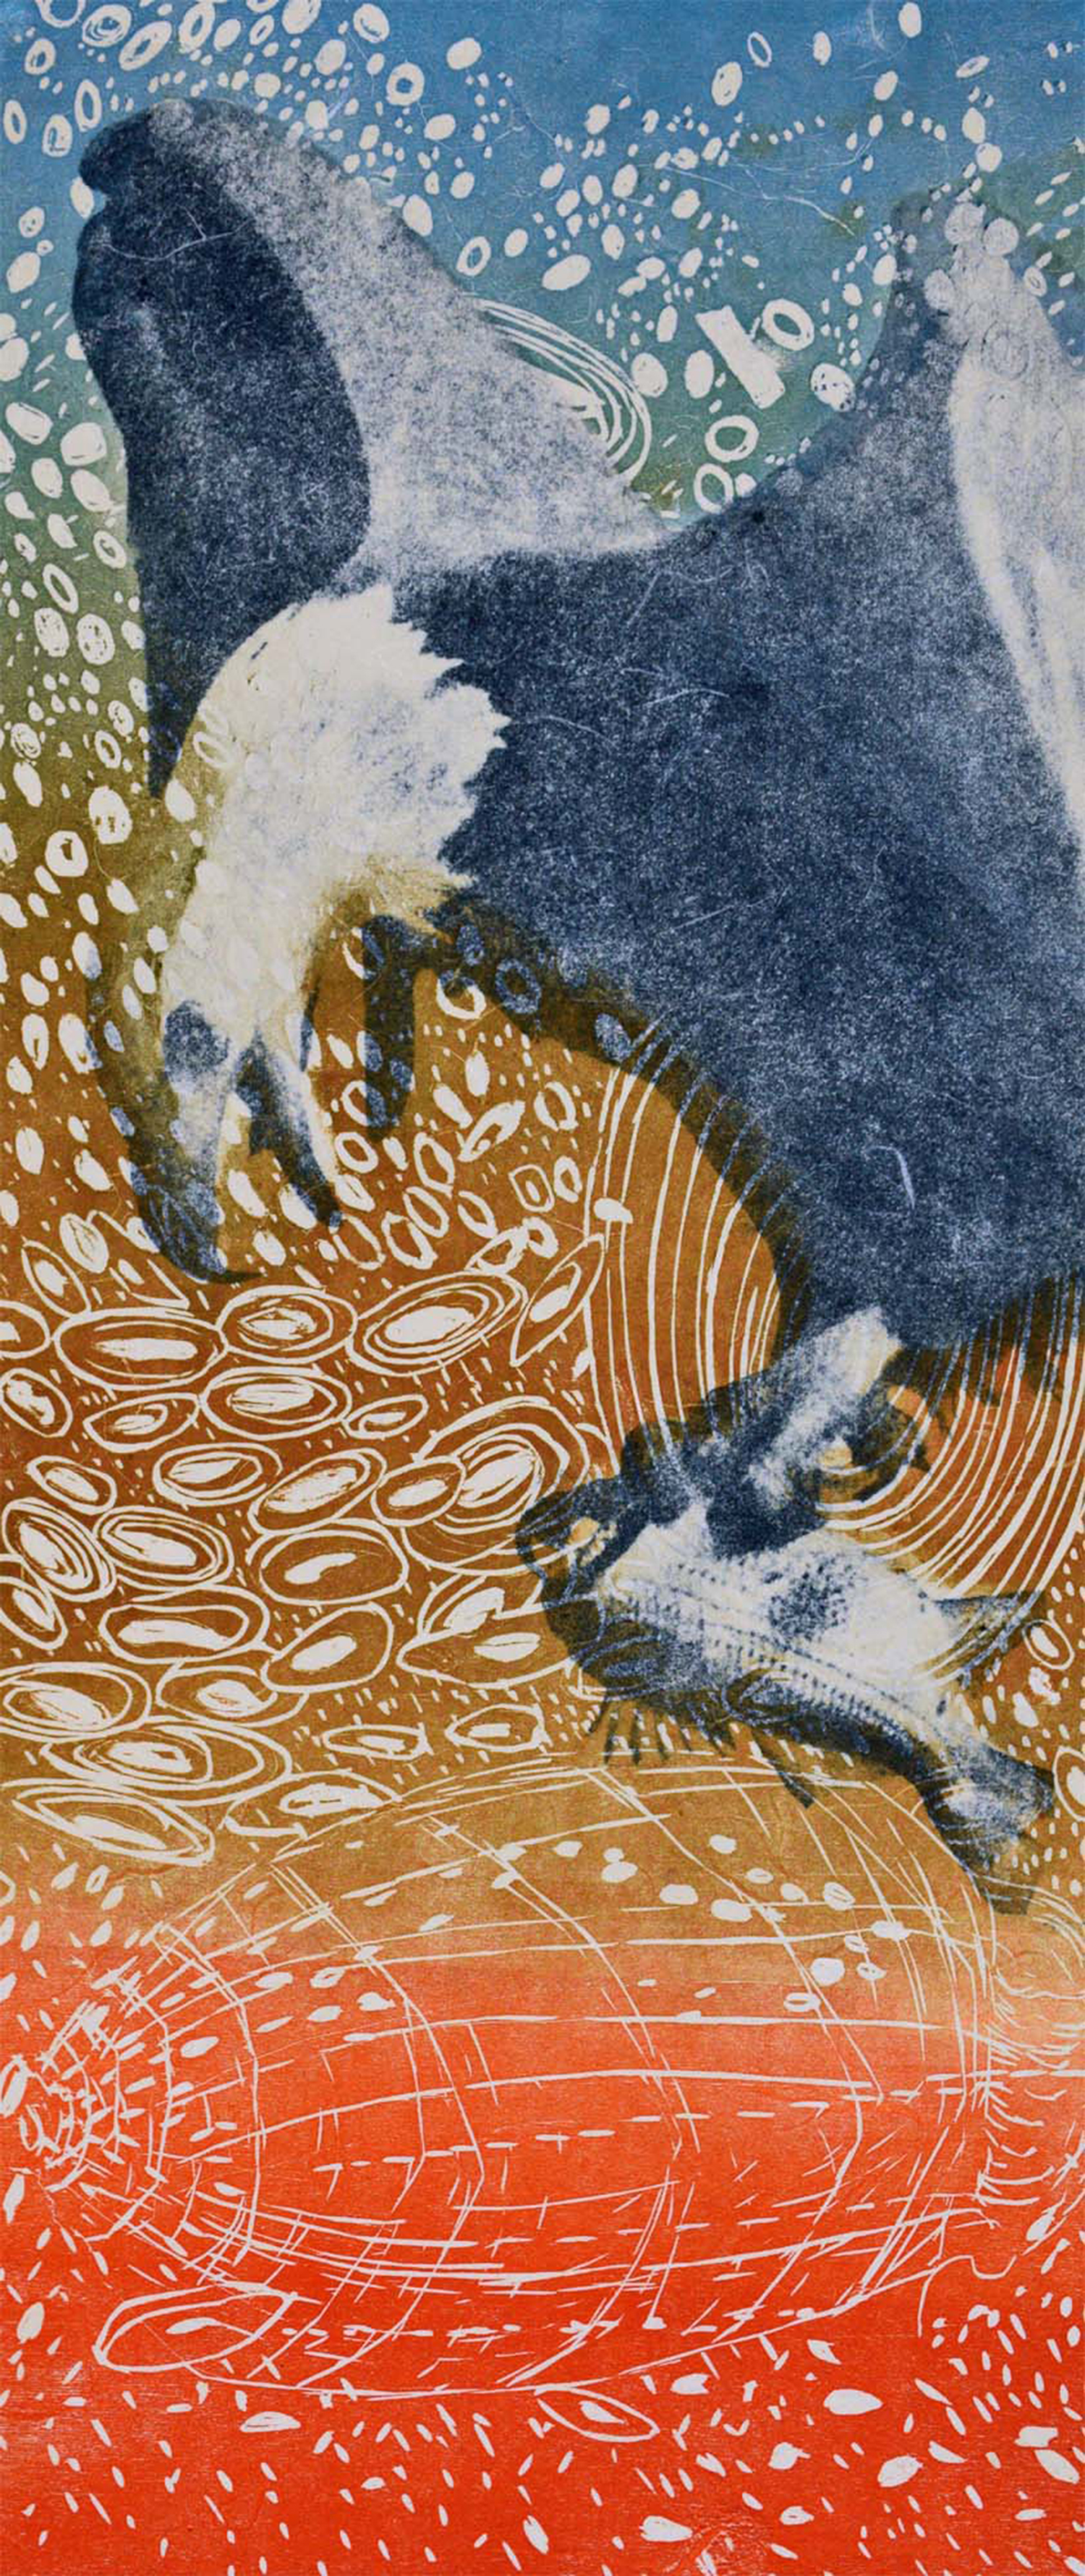 Eagle, 10 ¼ x 23 ¾ inches, Woodcut, Paper Lithography, Screenprint, Color Pencil, Japanese paper